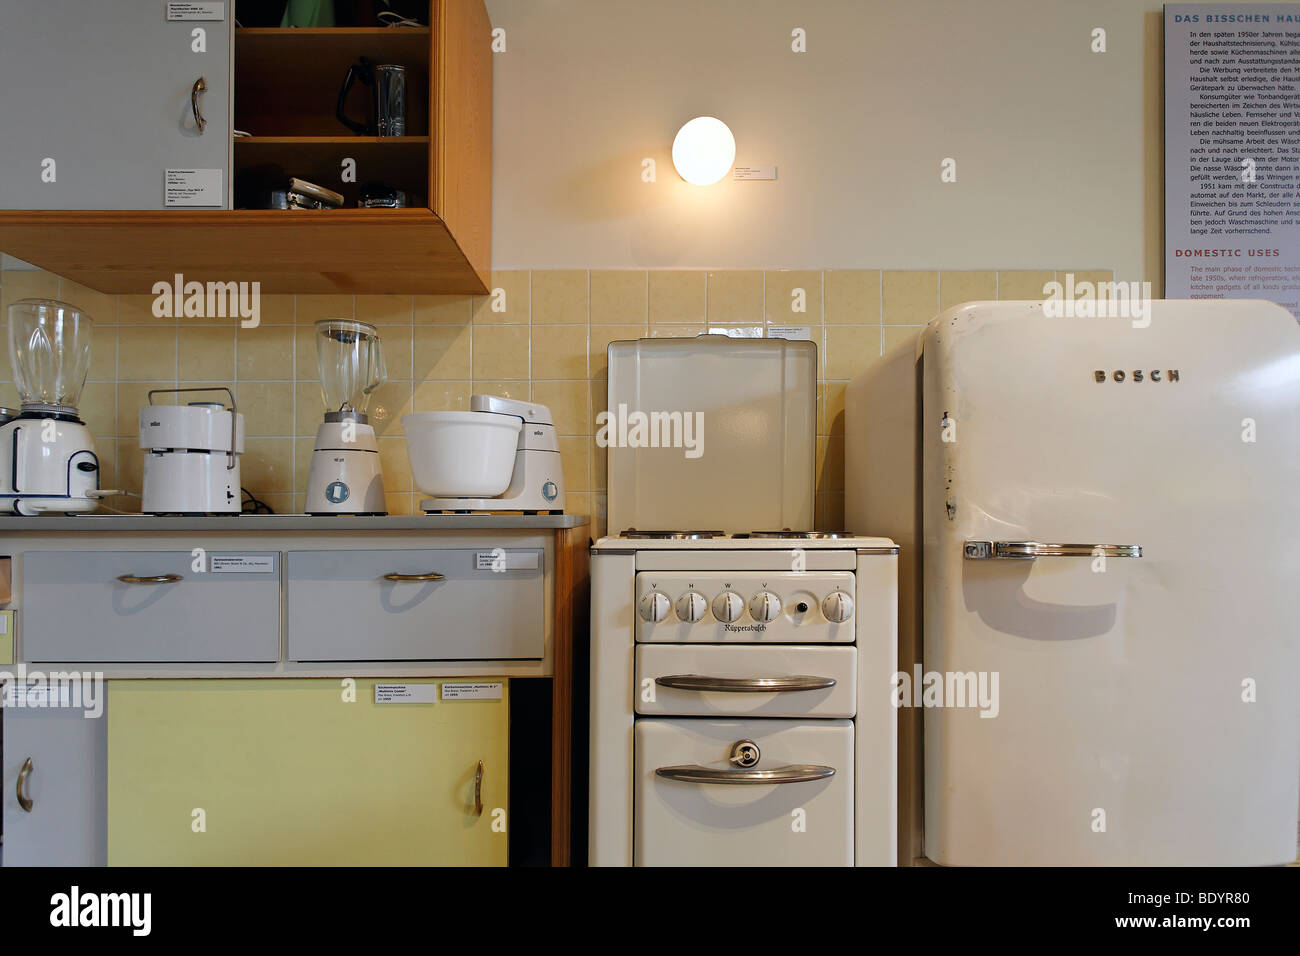 Uncategorized Comet Kitchen Appliances kitchen appliances electrical stock photos and household from the 50s power life museum recklinghausen substation